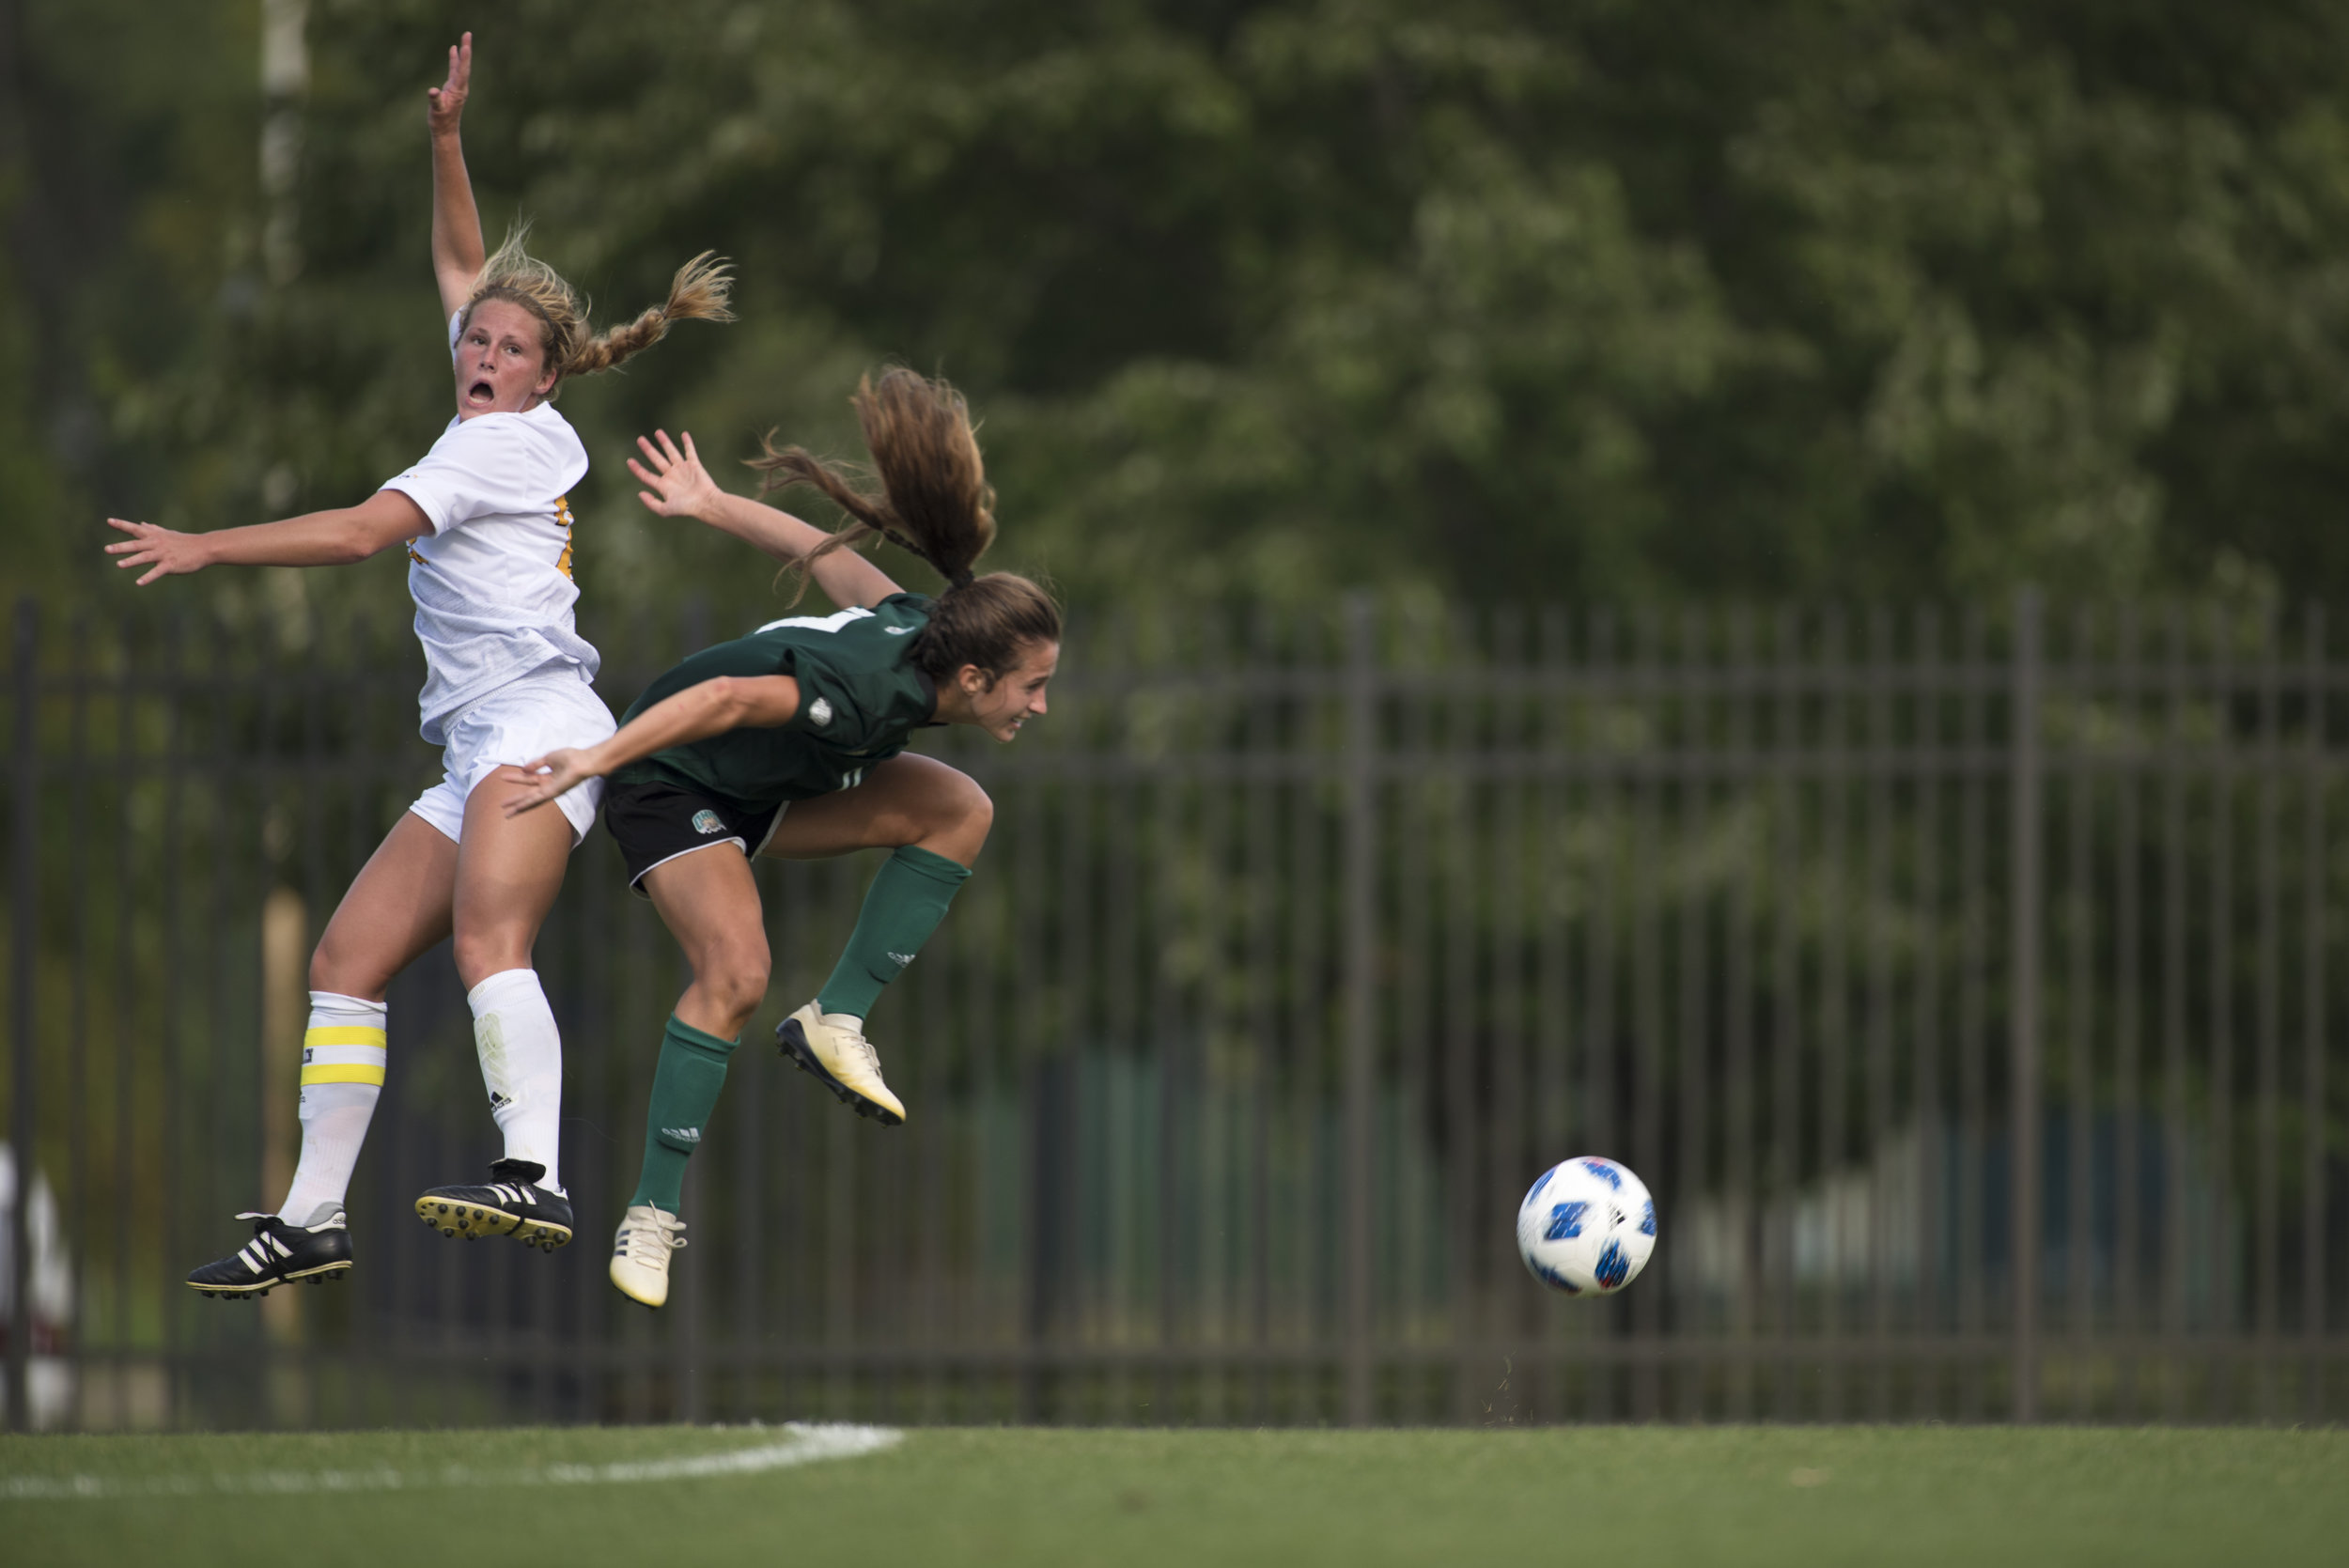 Ohio University defender Maria Collica goes for the header against Northern Kentucky University on Aug. 31. The Bobcats lost to the Norse 3-2.